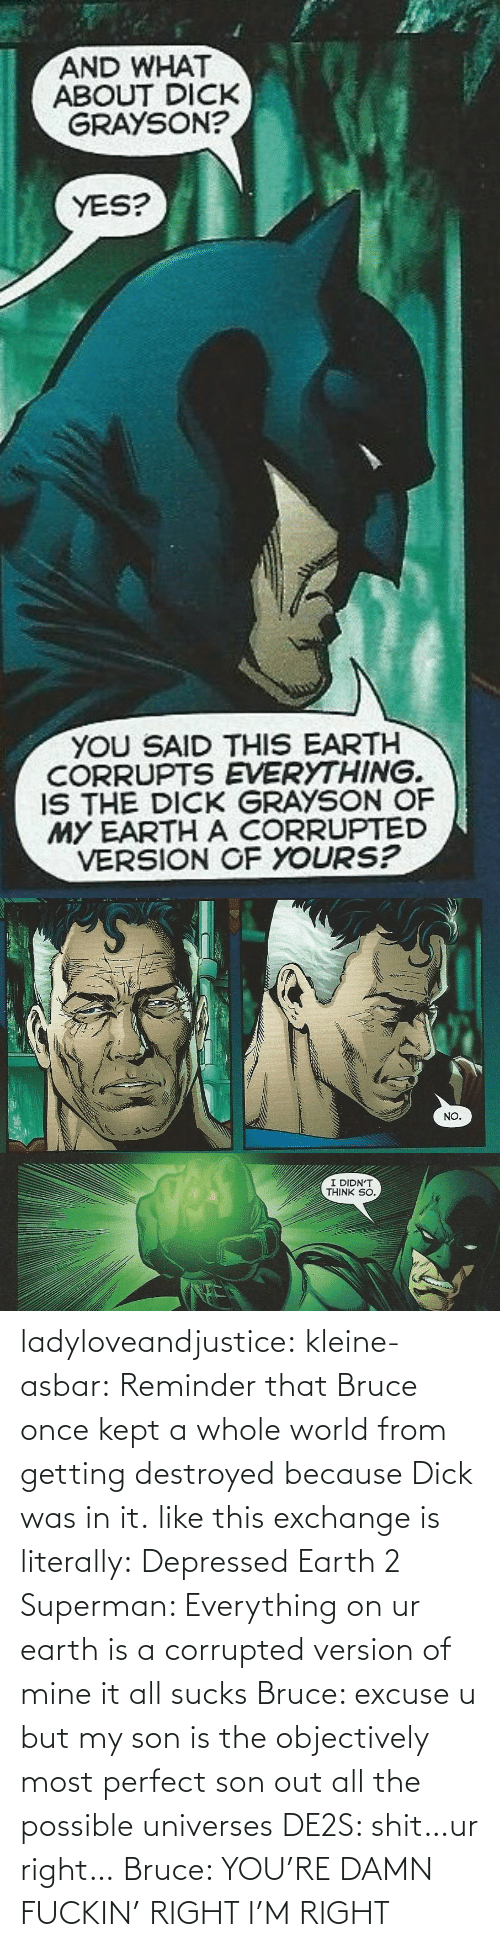 excuse: ladyloveandjustice:  kleine-asbar: Reminder that Bruce once kept a whole world from getting destroyed because Dick was in it. like this exchange is literally: Depressed Earth 2 Superman: Everything on ur earth is a corrupted version of mine it all sucks Bruce: excuse u but my son is the objectively most perfect son out all the possible universes DE2S: shit…ur right… Bruce: YOU'RE DAMN FUCKIN' RIGHT I'M RIGHT